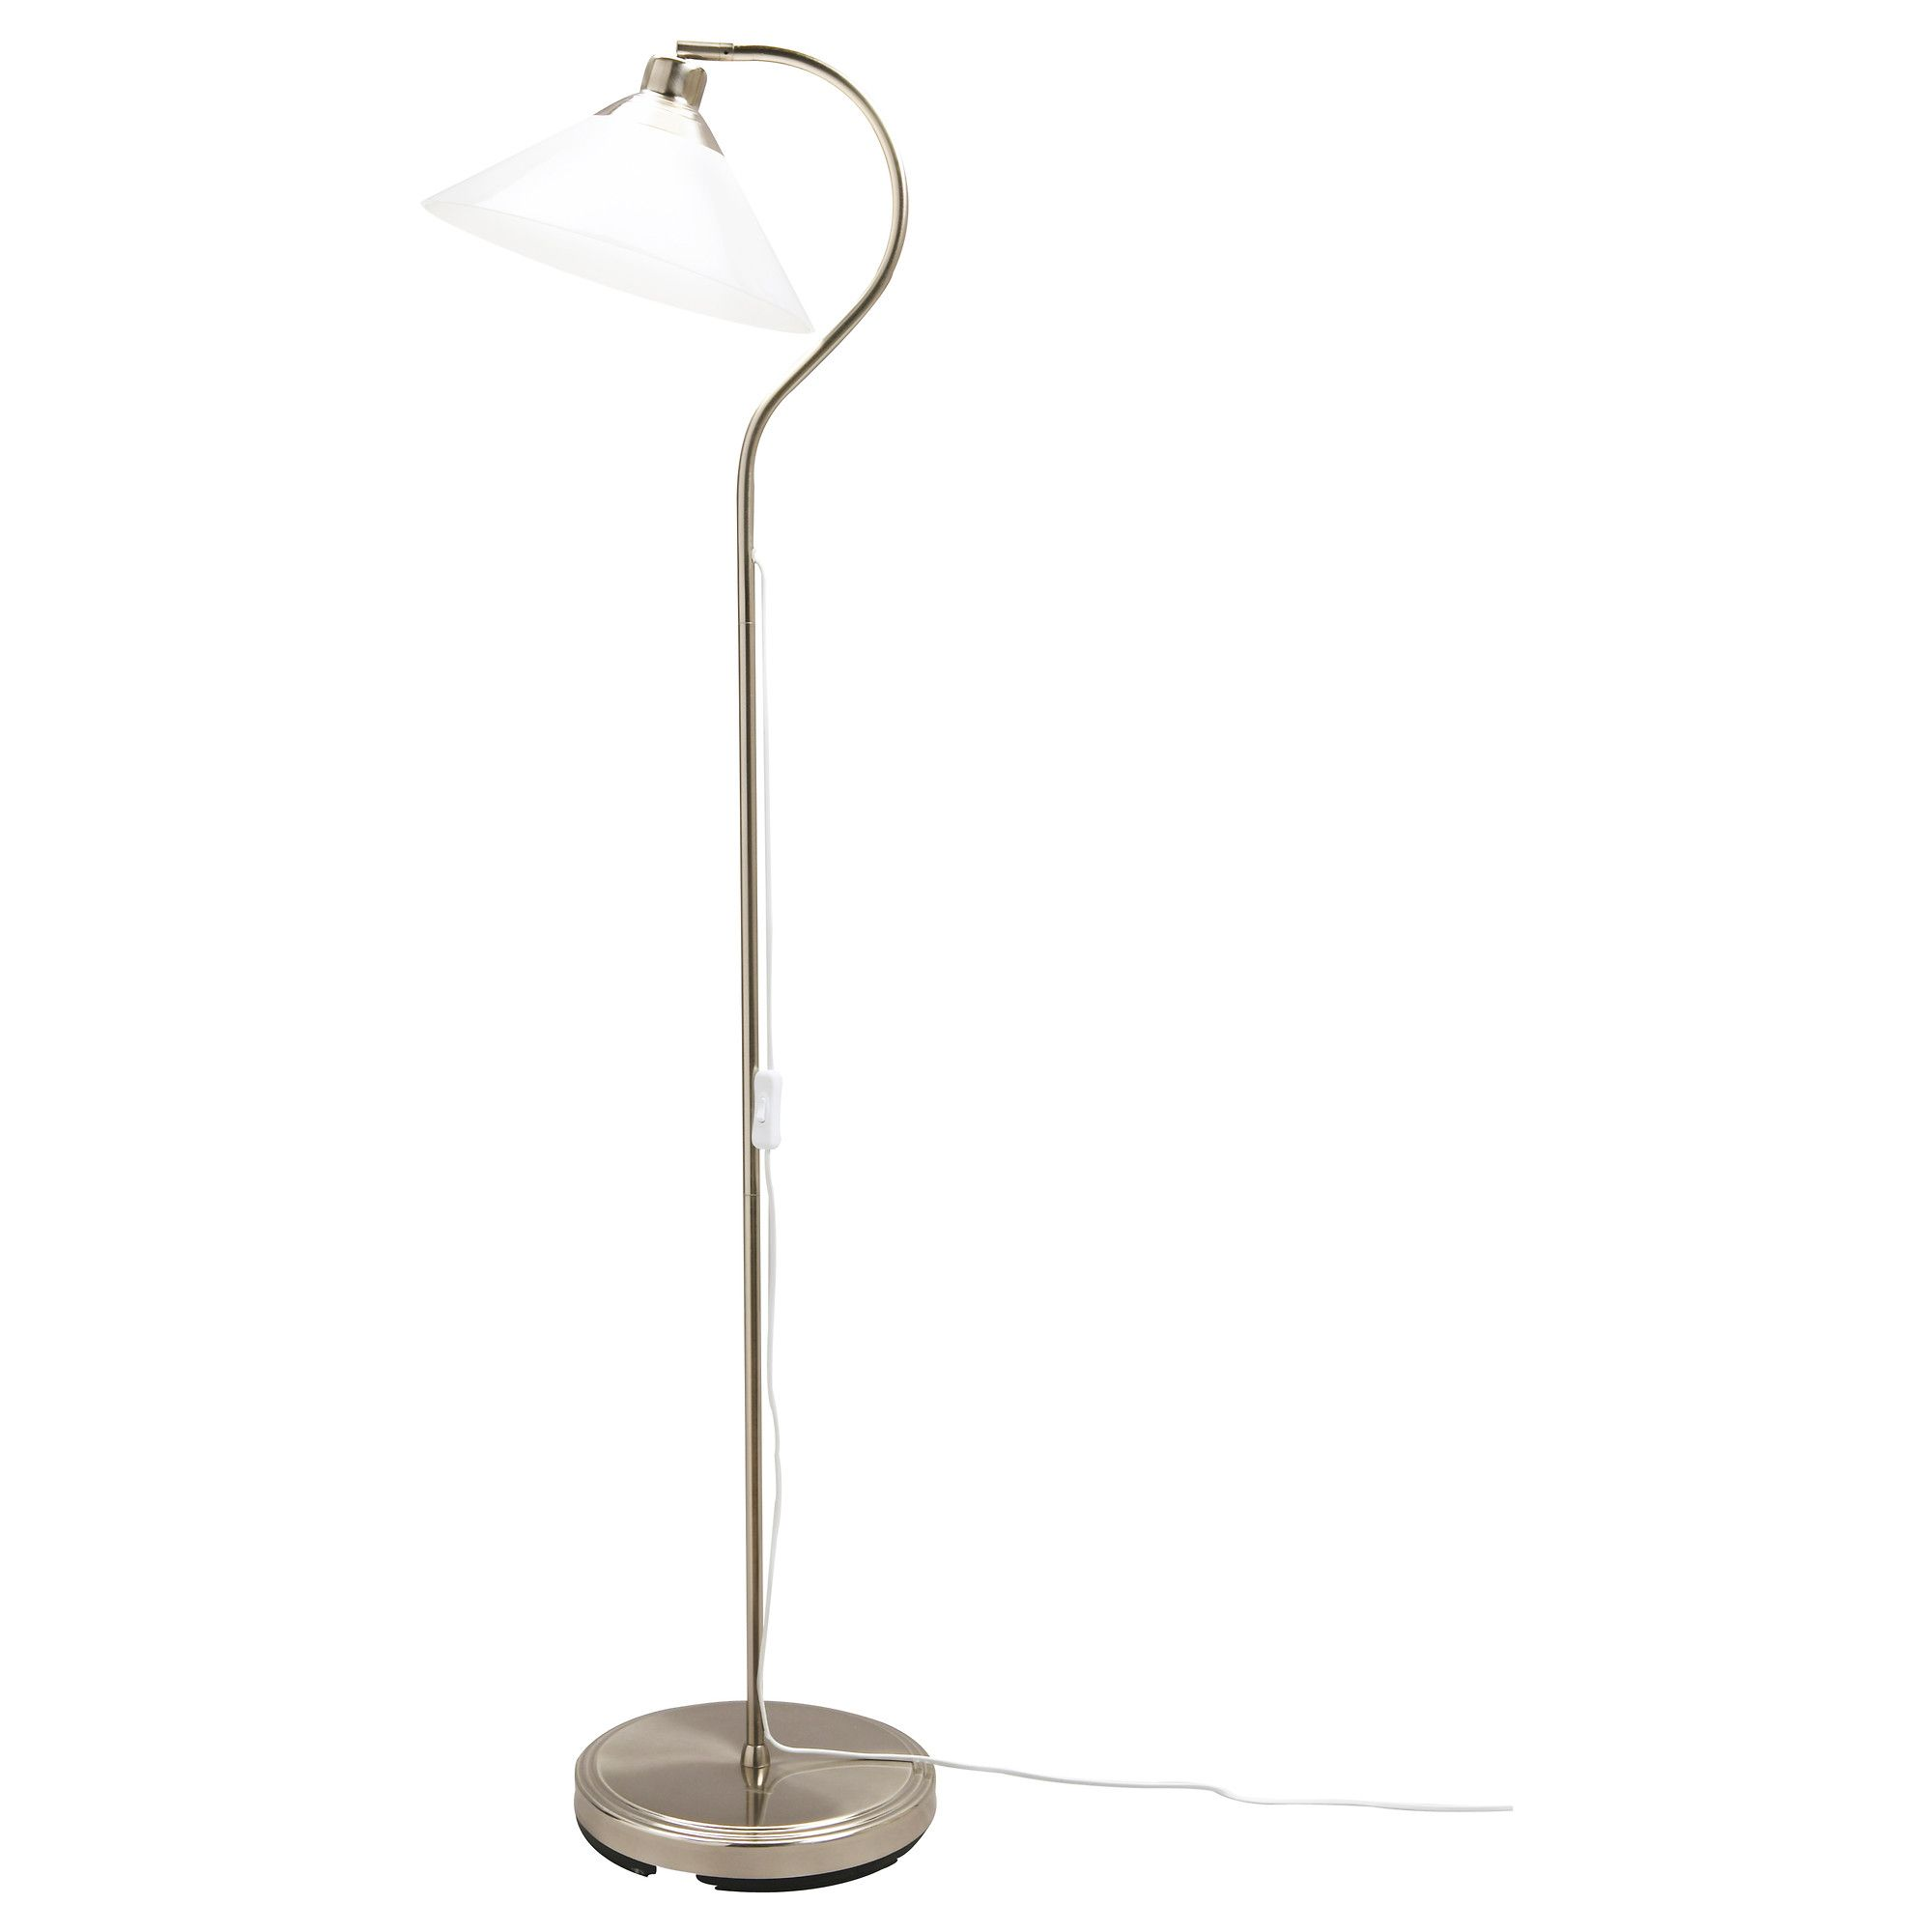 Another Cute And Affordable Lamp The Kroby Floor Reading